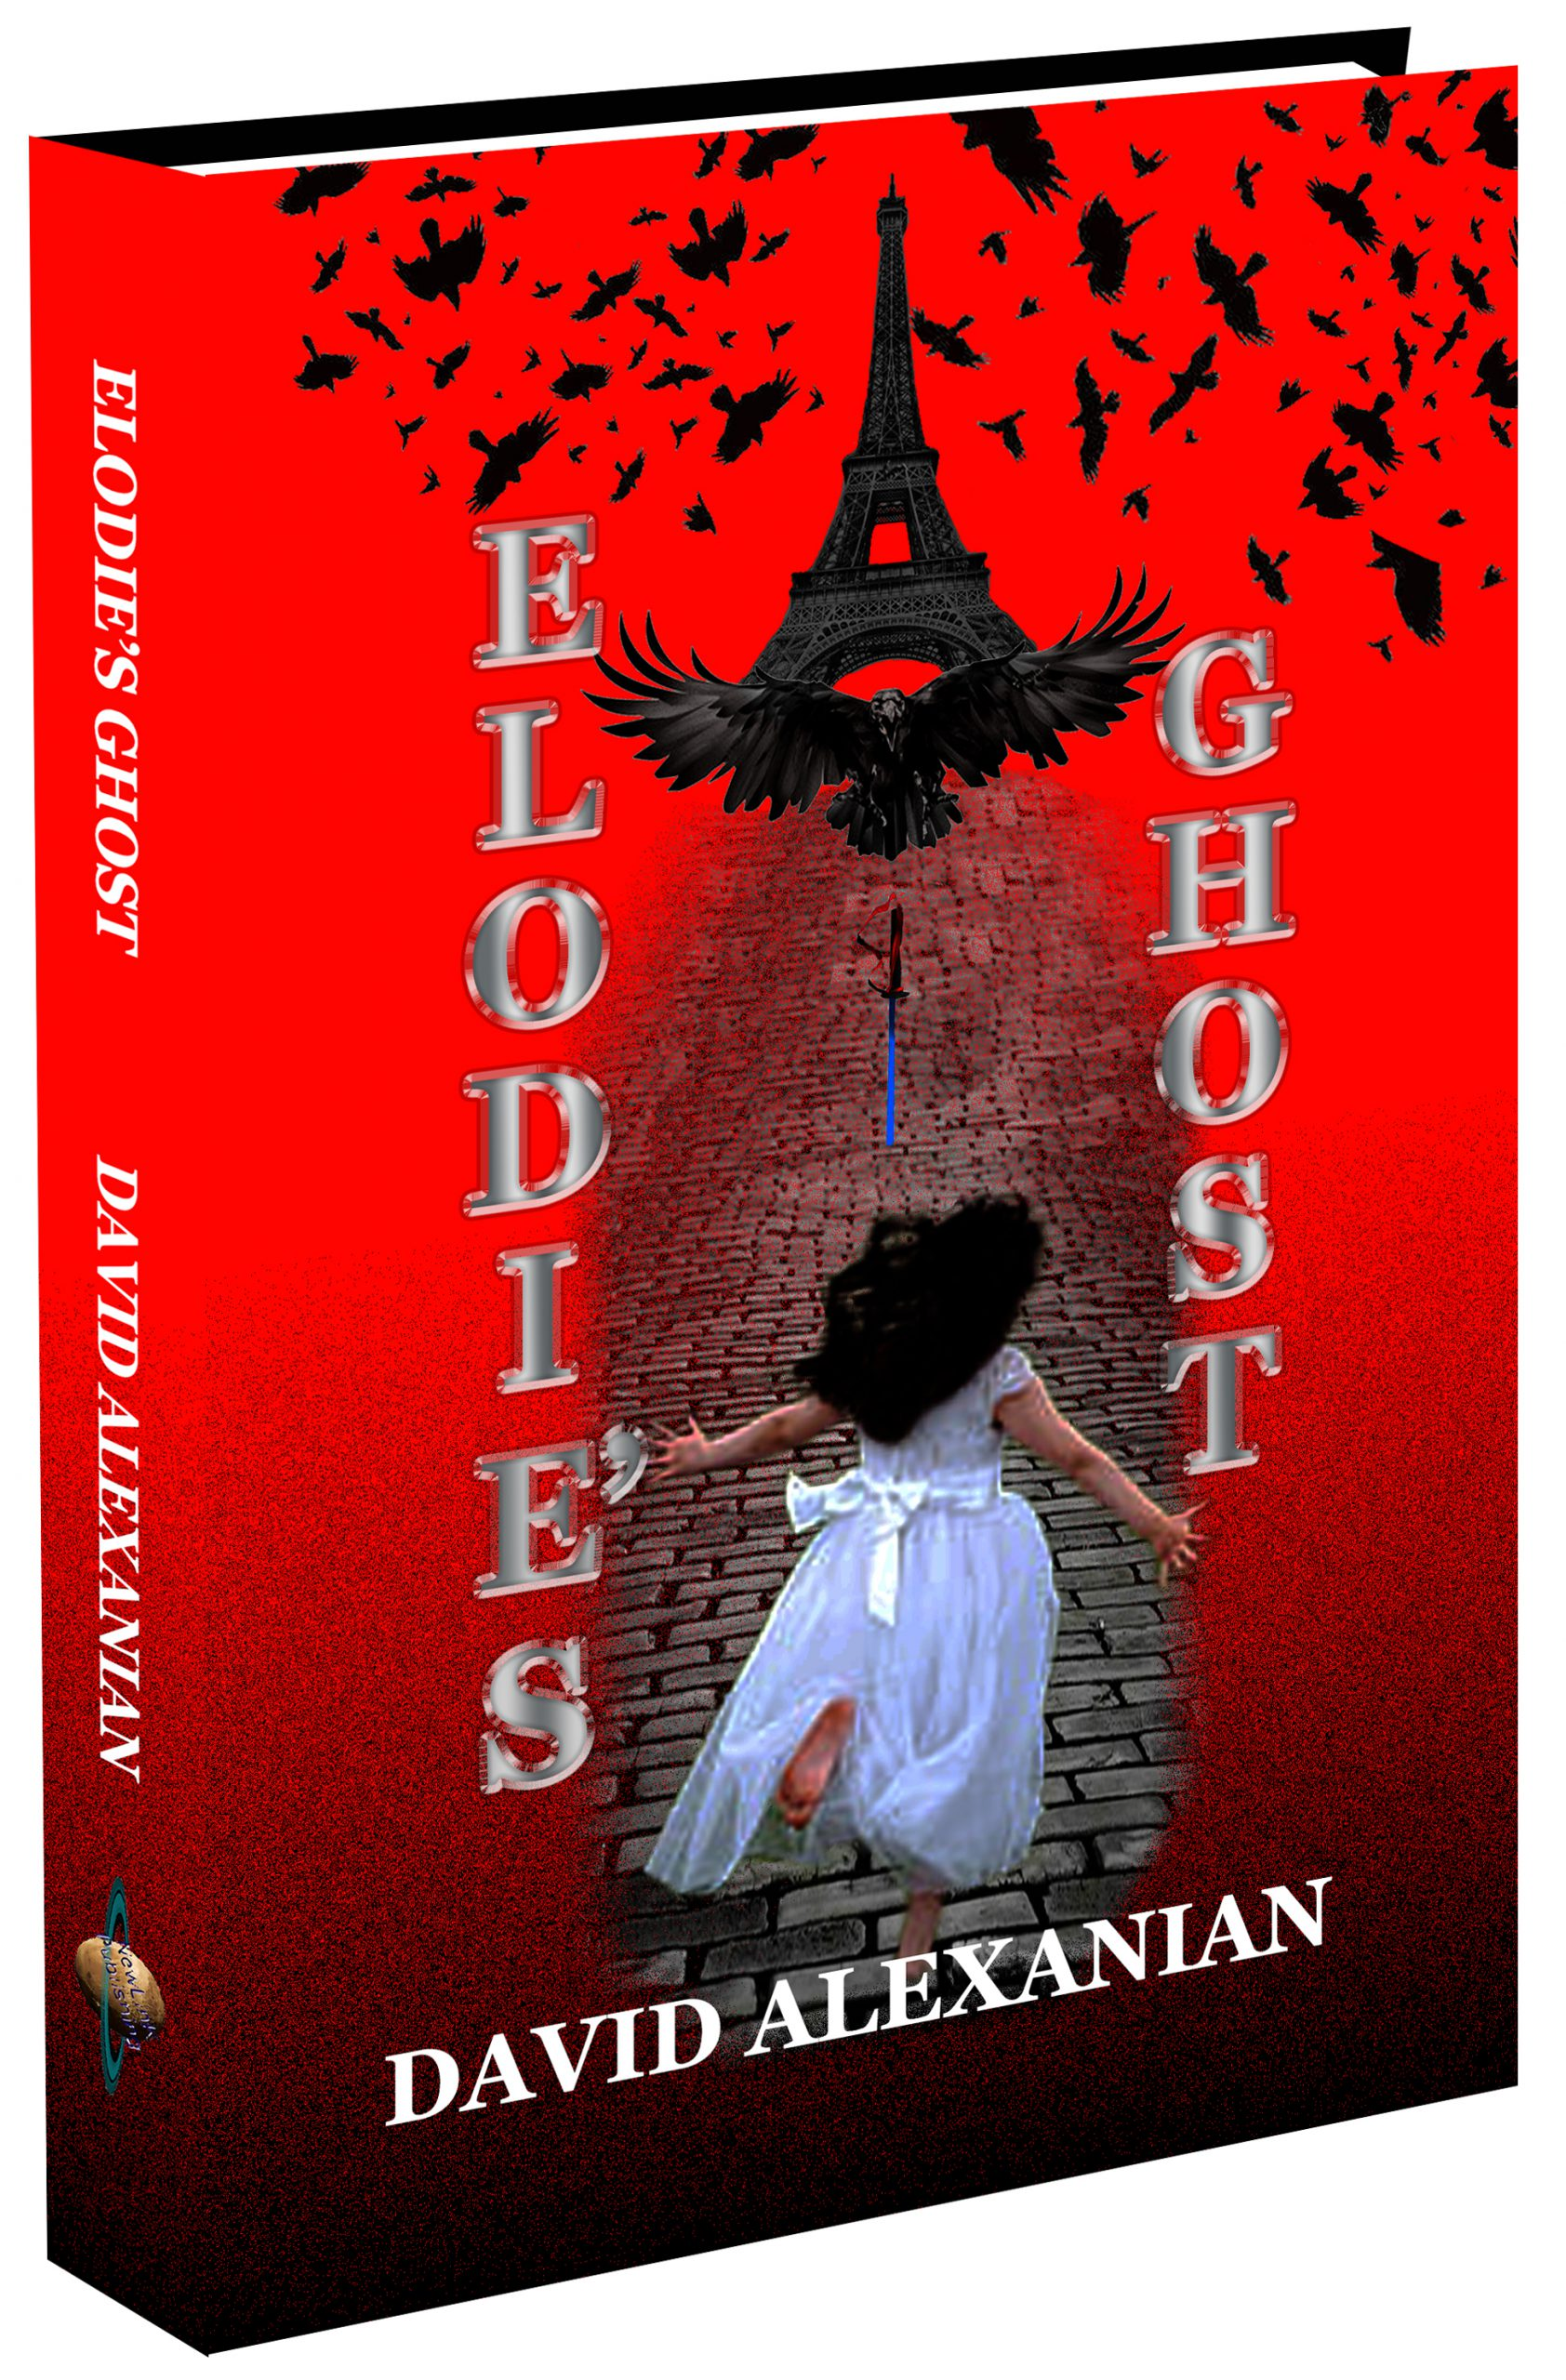 Elodie's Ghost iso cover